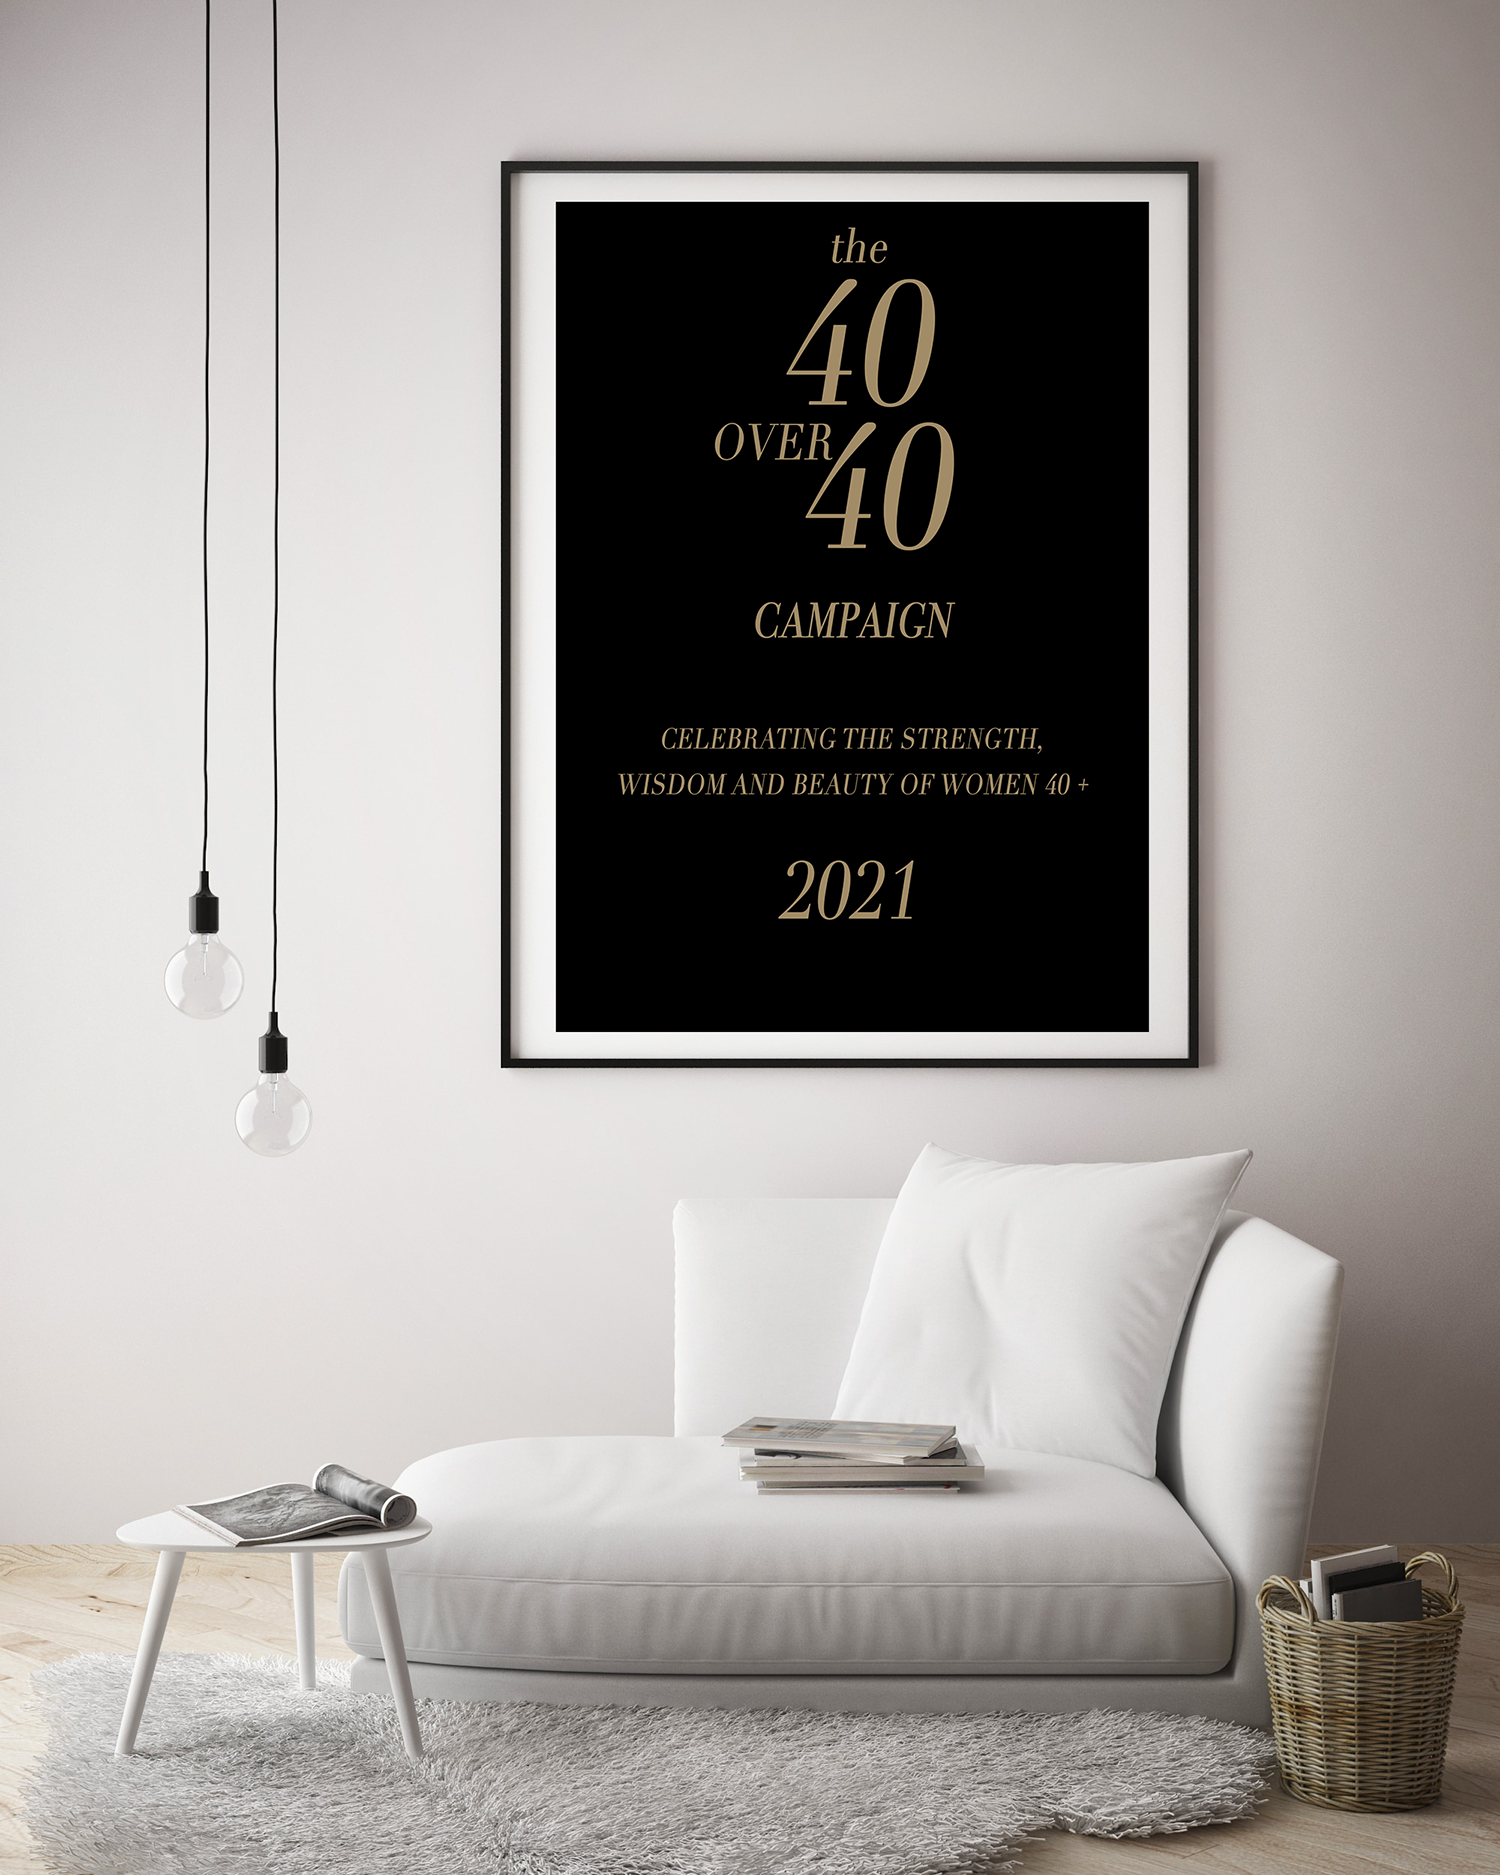 40 OVER 40 WOMAN CAMPAIGN.